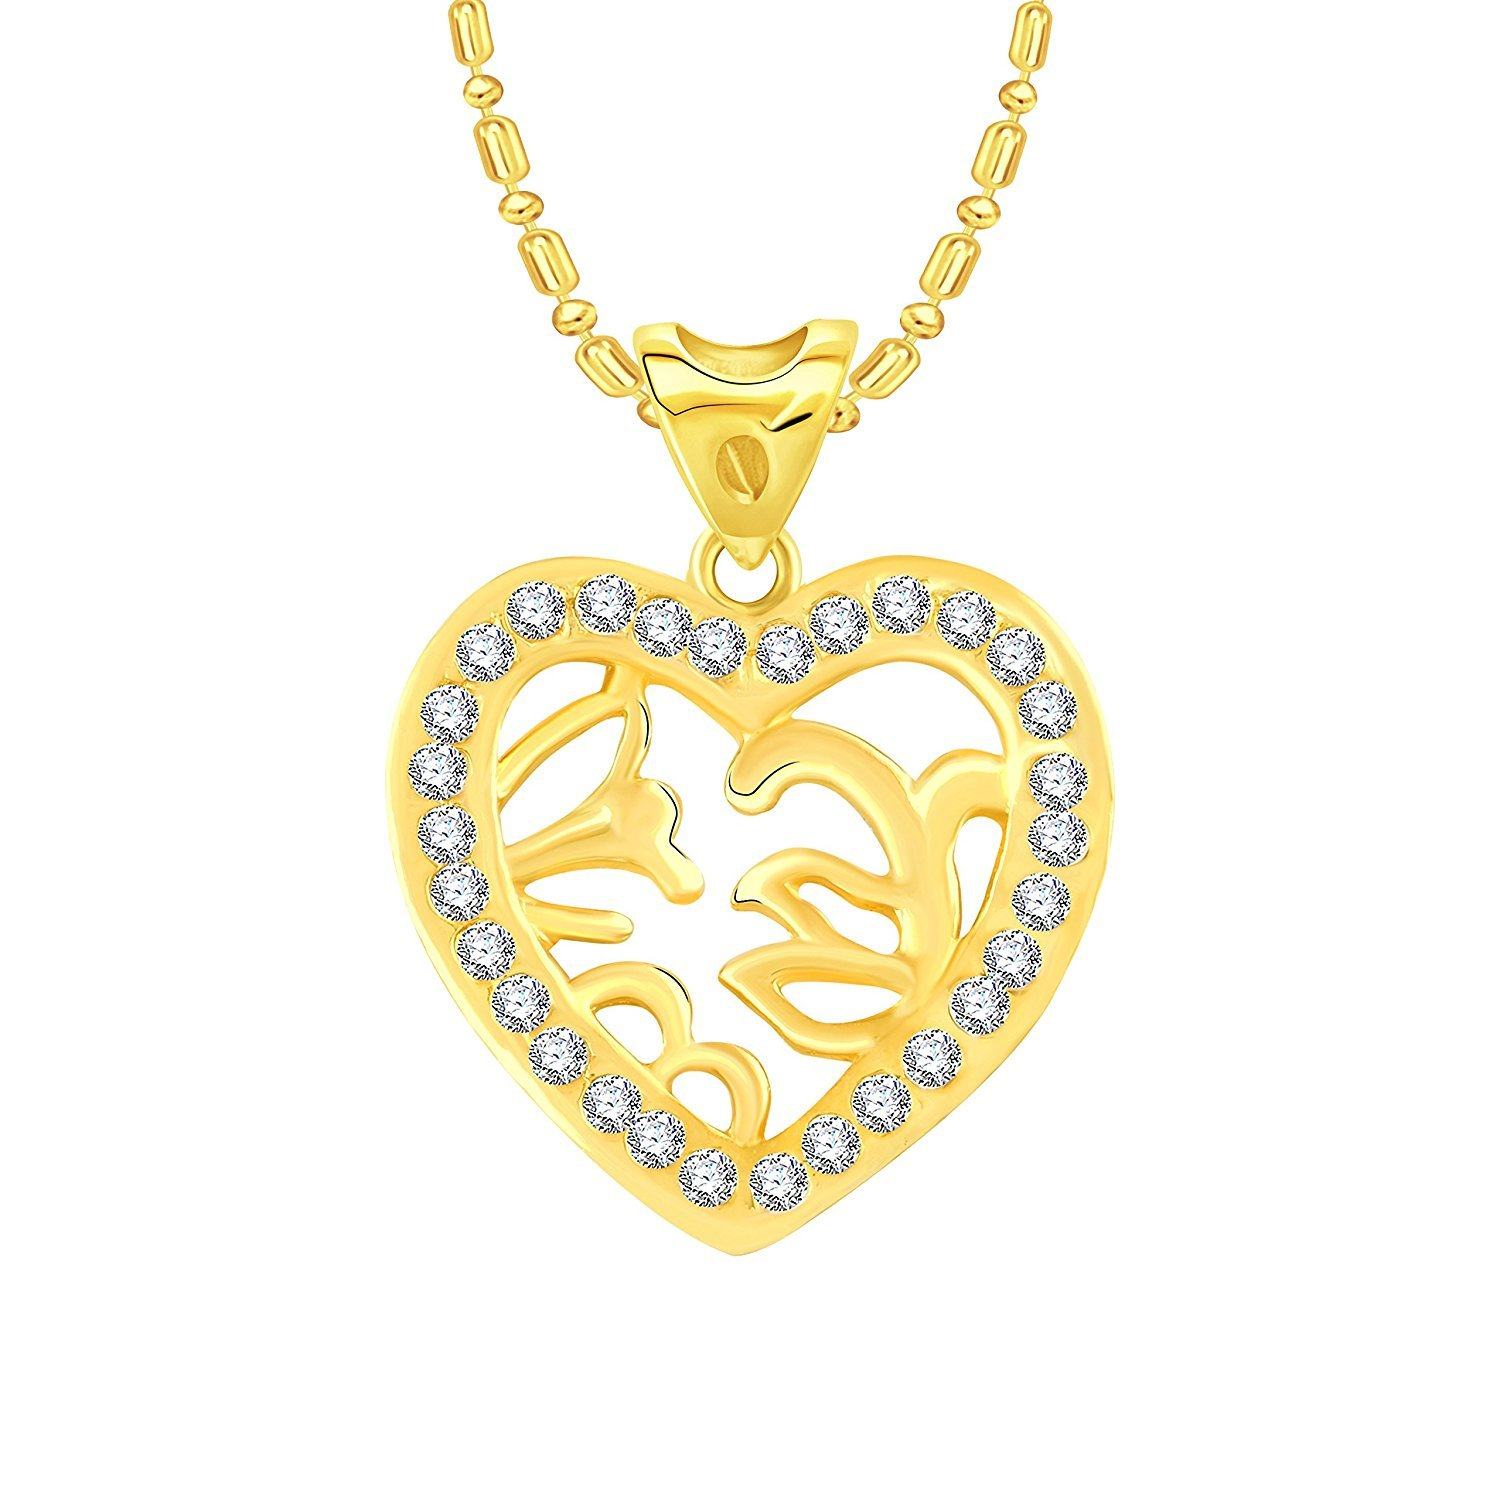 Simulated Diamond Studded Fashion Love Promise Heart Pendant Necklace in 14K Yellow Gold Plated With Box Chain